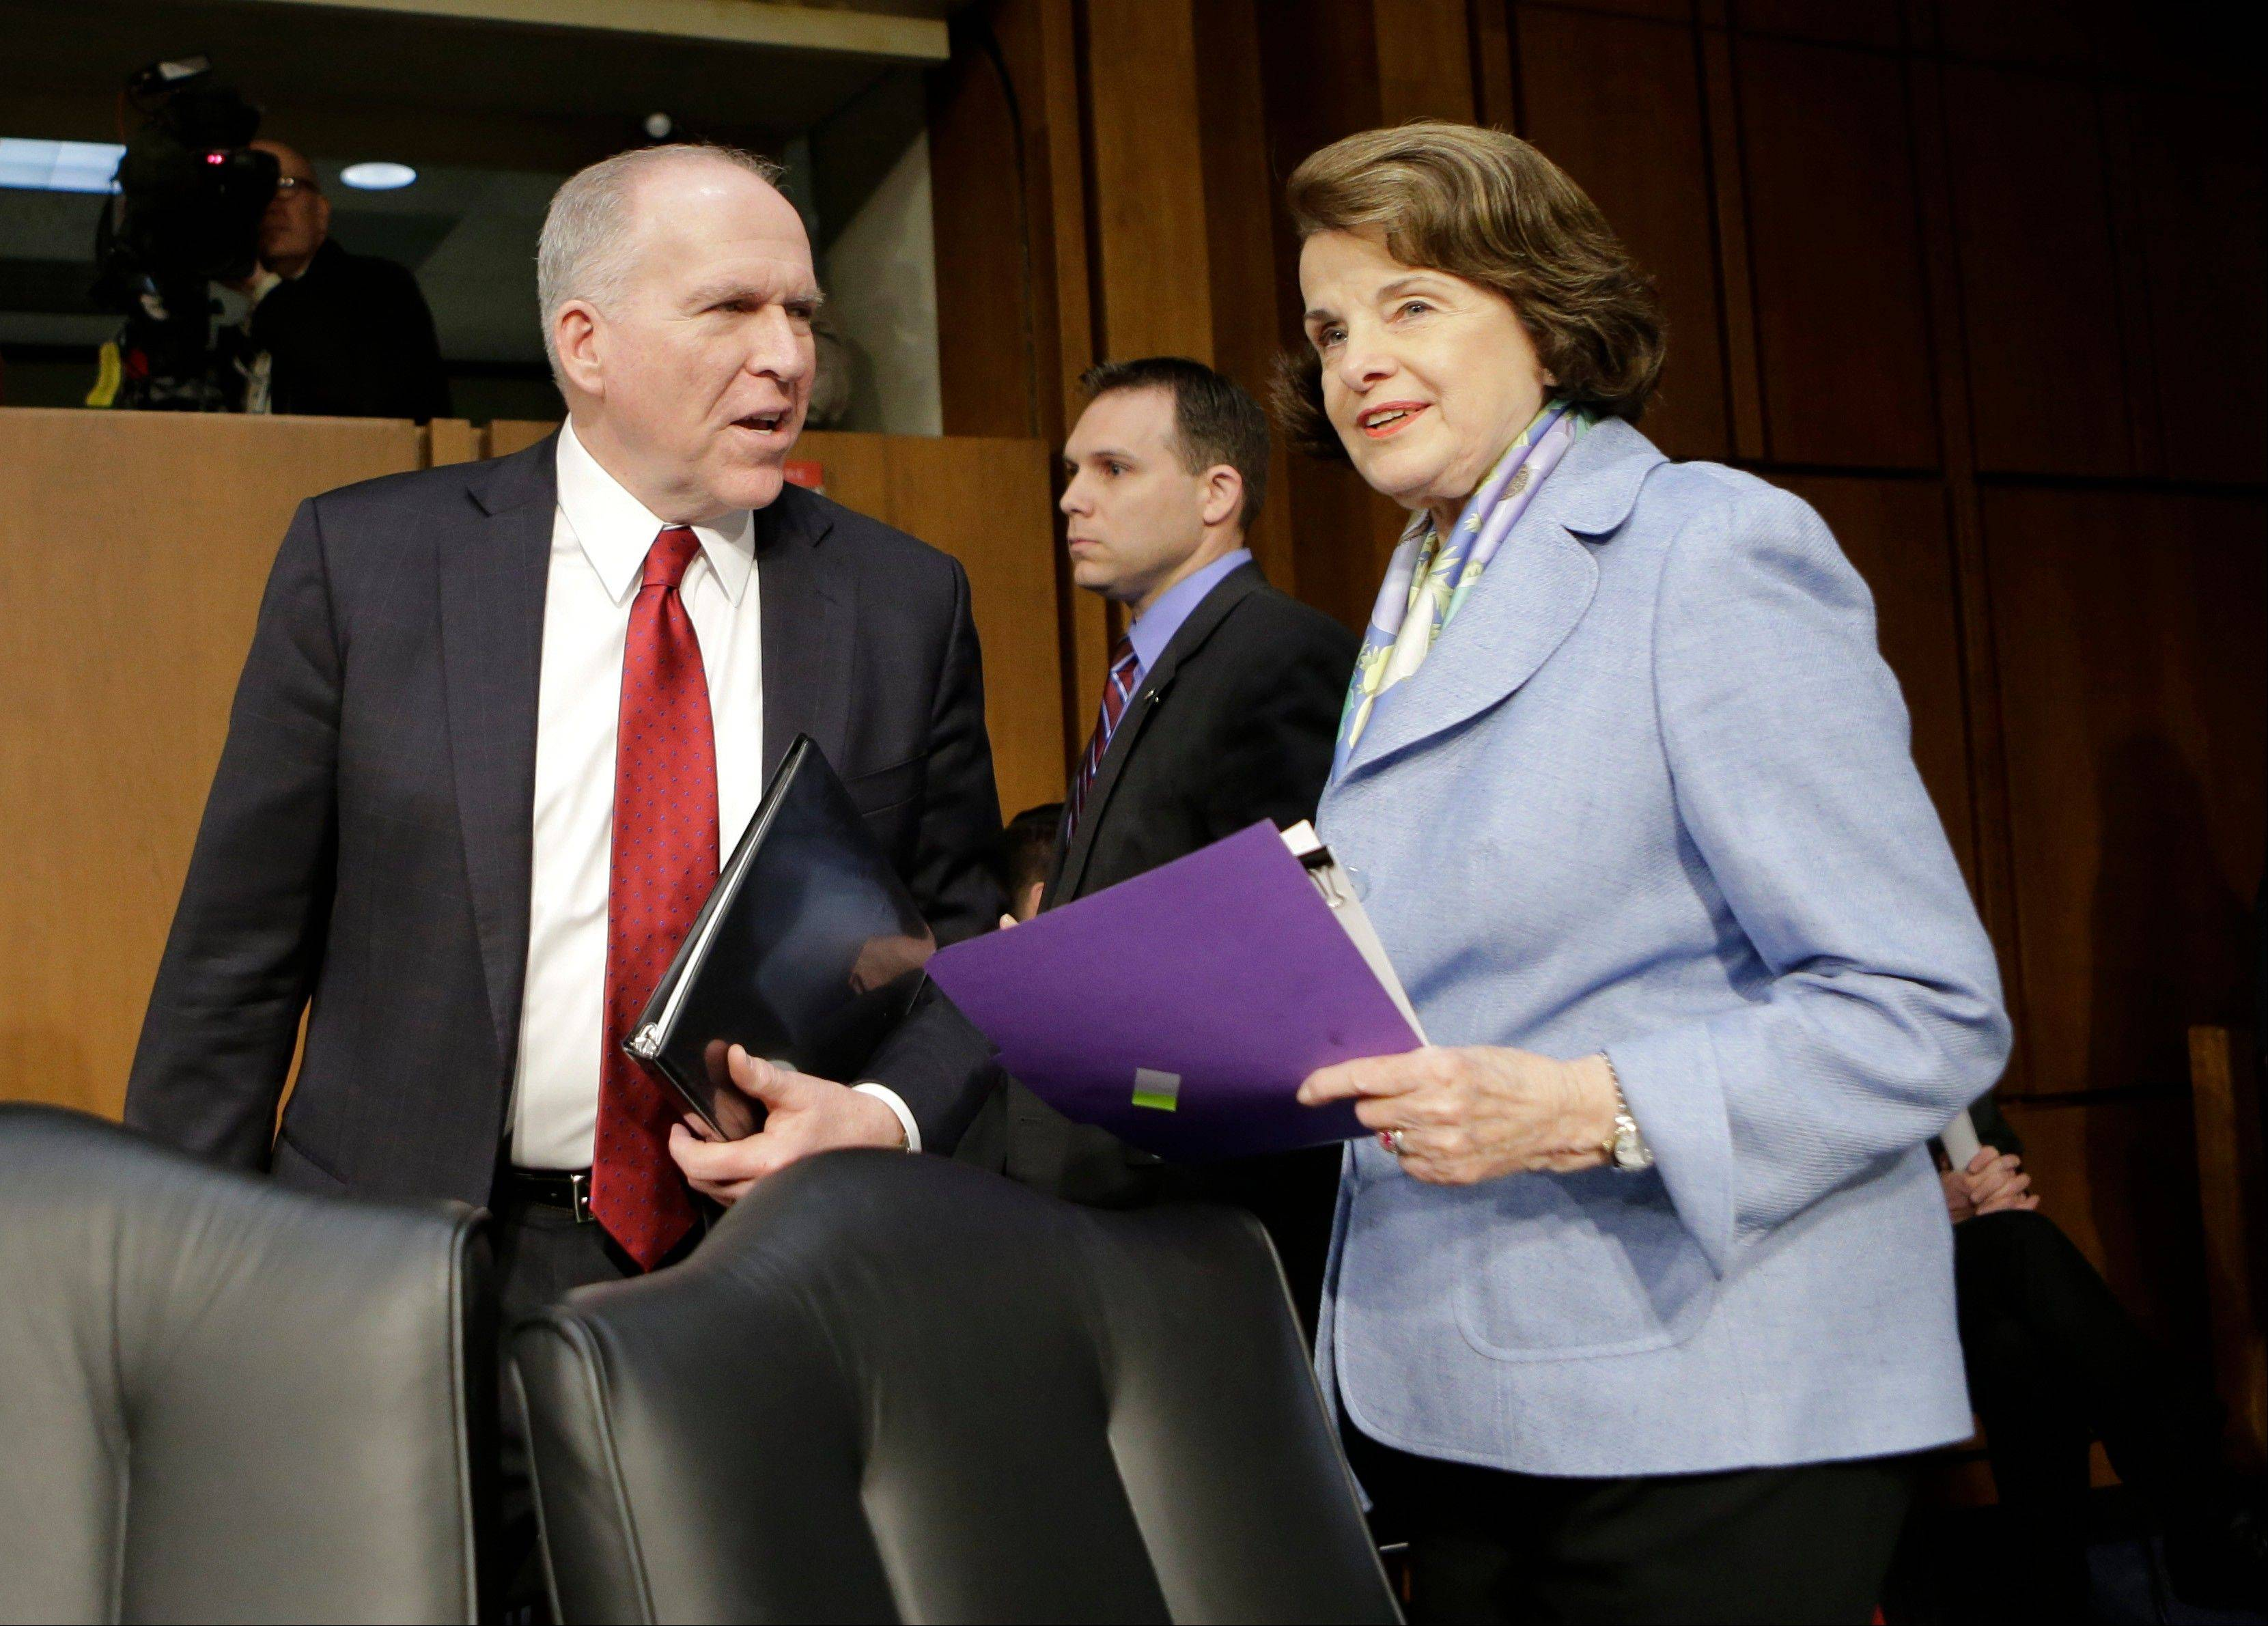 Associated Press/Feb. 7, 2013Senate Intelligence Committee Chair Sen. Dianne Feinstein, D-Calif., right, welcomes CIA Director nominee John Brennan on Capitol Hill in Washington.